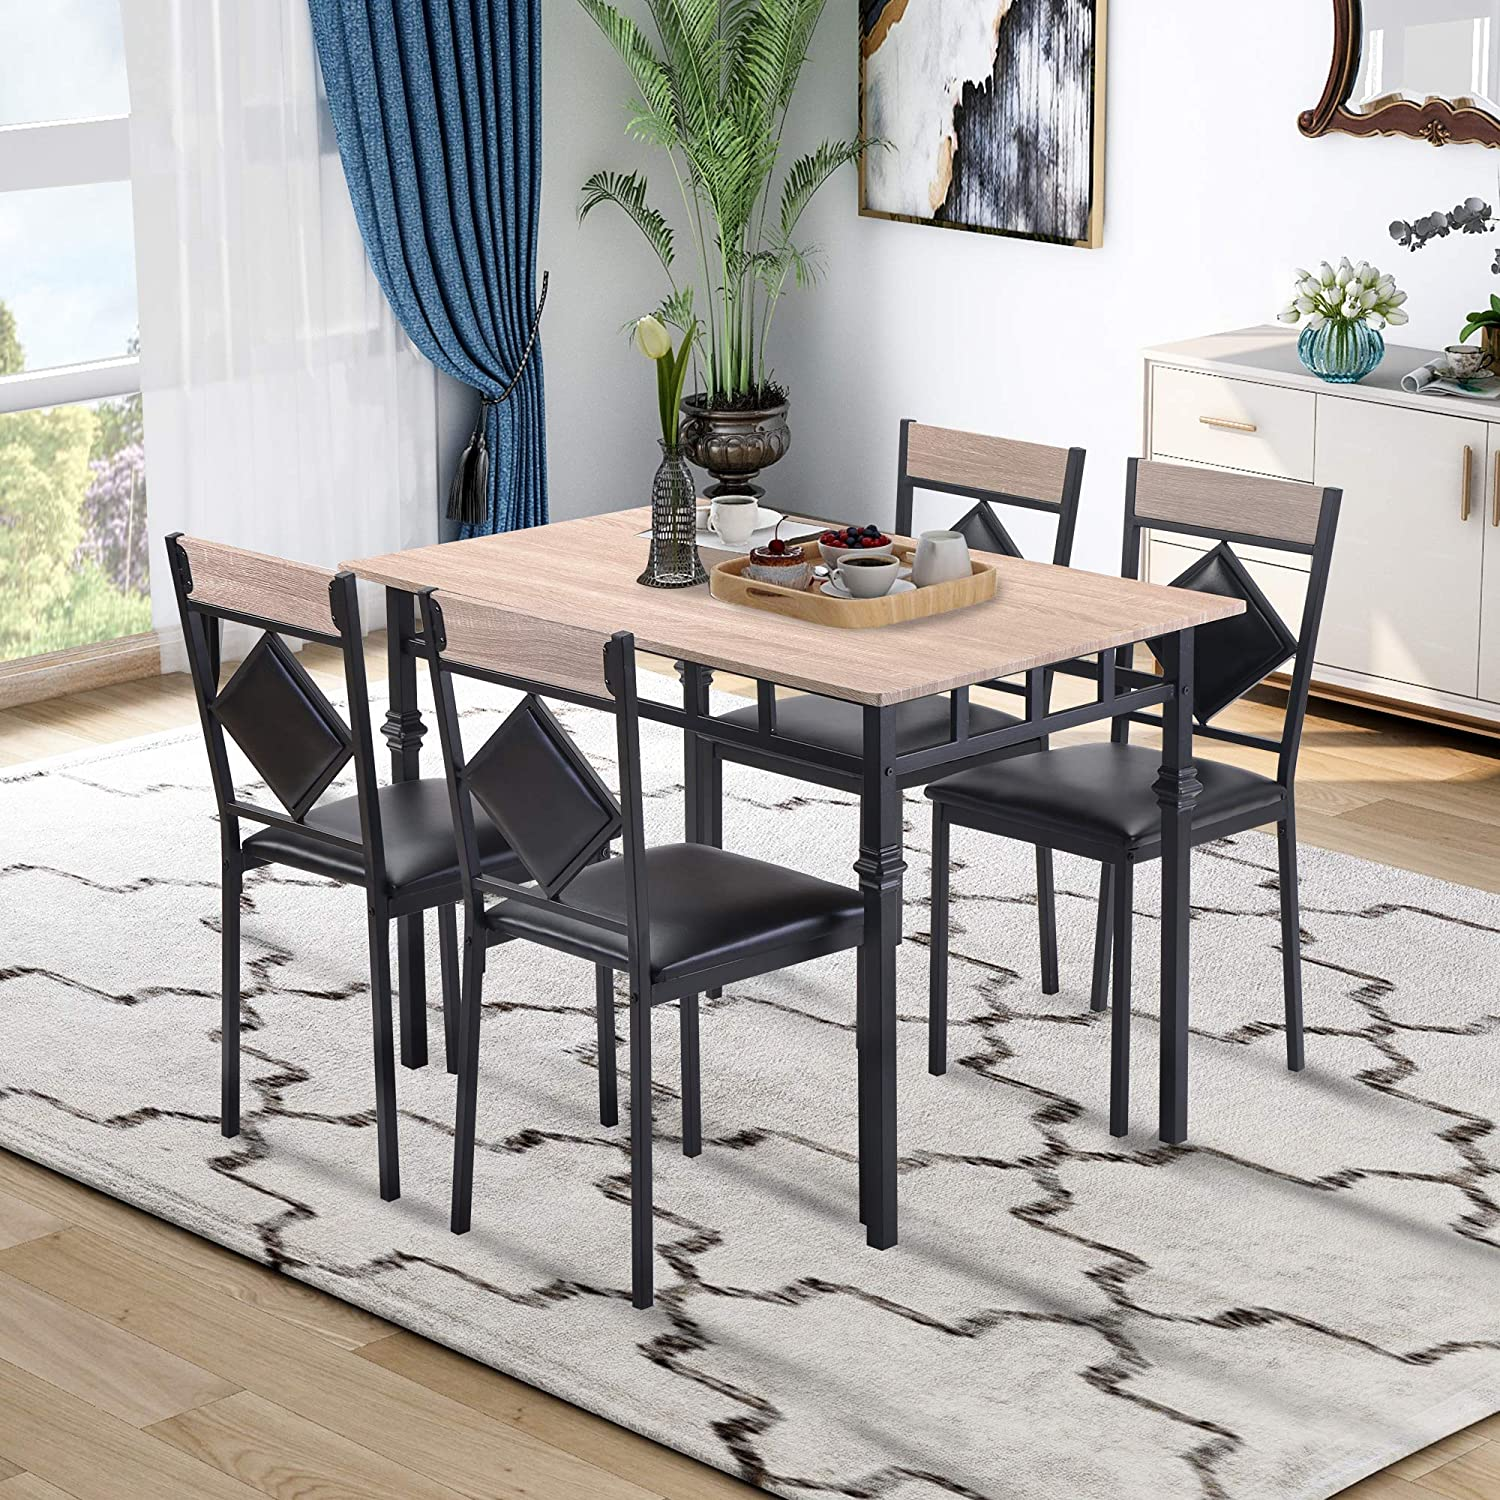 Recaceik 5 PC Table Set Wood Kitchen Desk and 4 Dining Faux Leather Chair, with Metal Frame, Easy to Assemble, for Living, Party Room Occasions Home Furniture, Beige